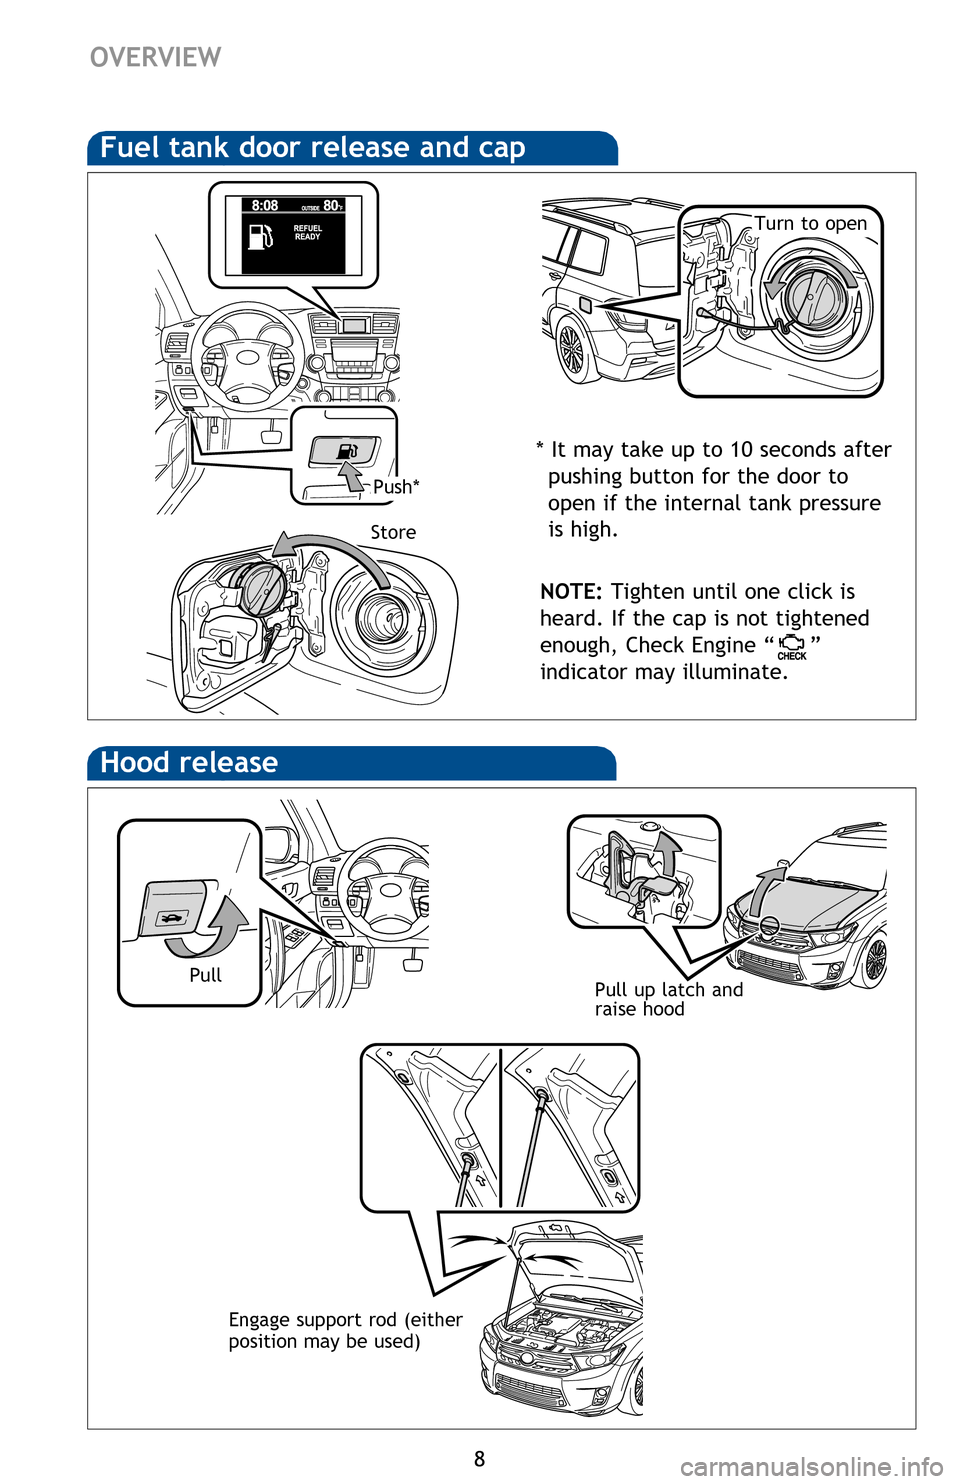 Check Engine Toyota Highlander Hybrid 2013 Xu50 3g Quick 2006 Diagram Reference Guide Page 10